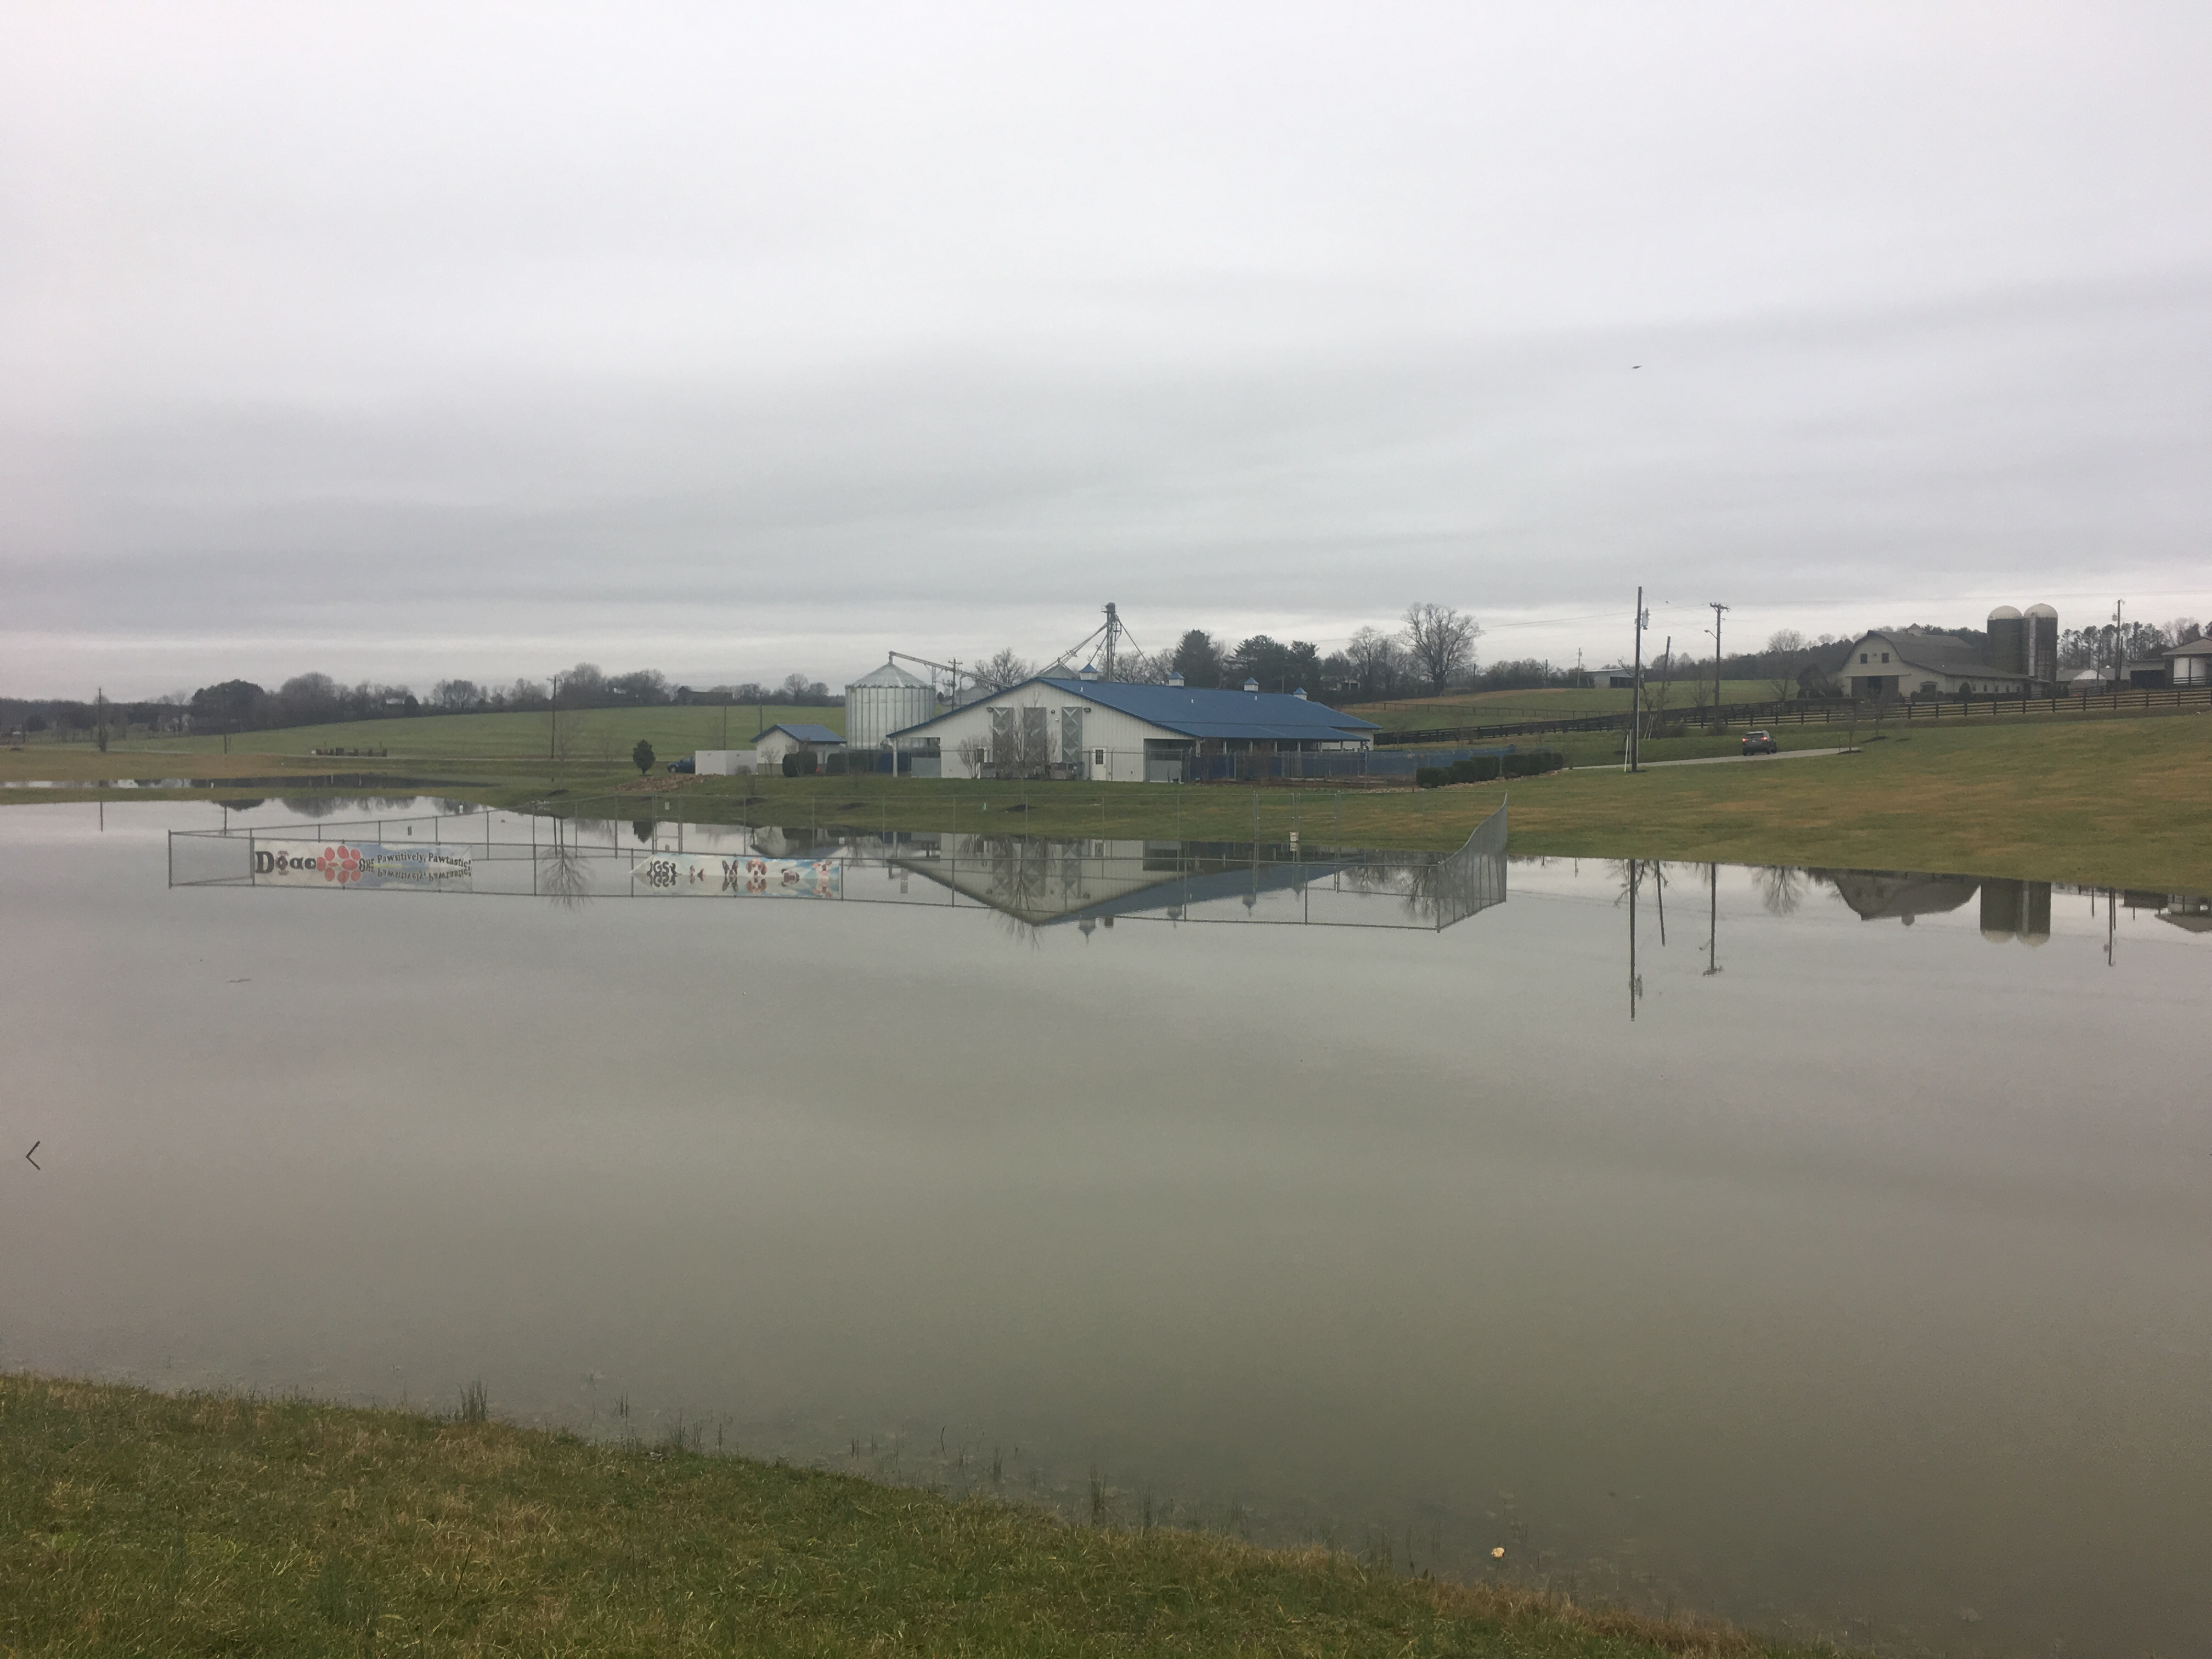 Flooding at AllDogs Canine in Jefferson City - The lower kennel field that would allow dogs to be outside had flooded. That leaves their dogs to stay inside.